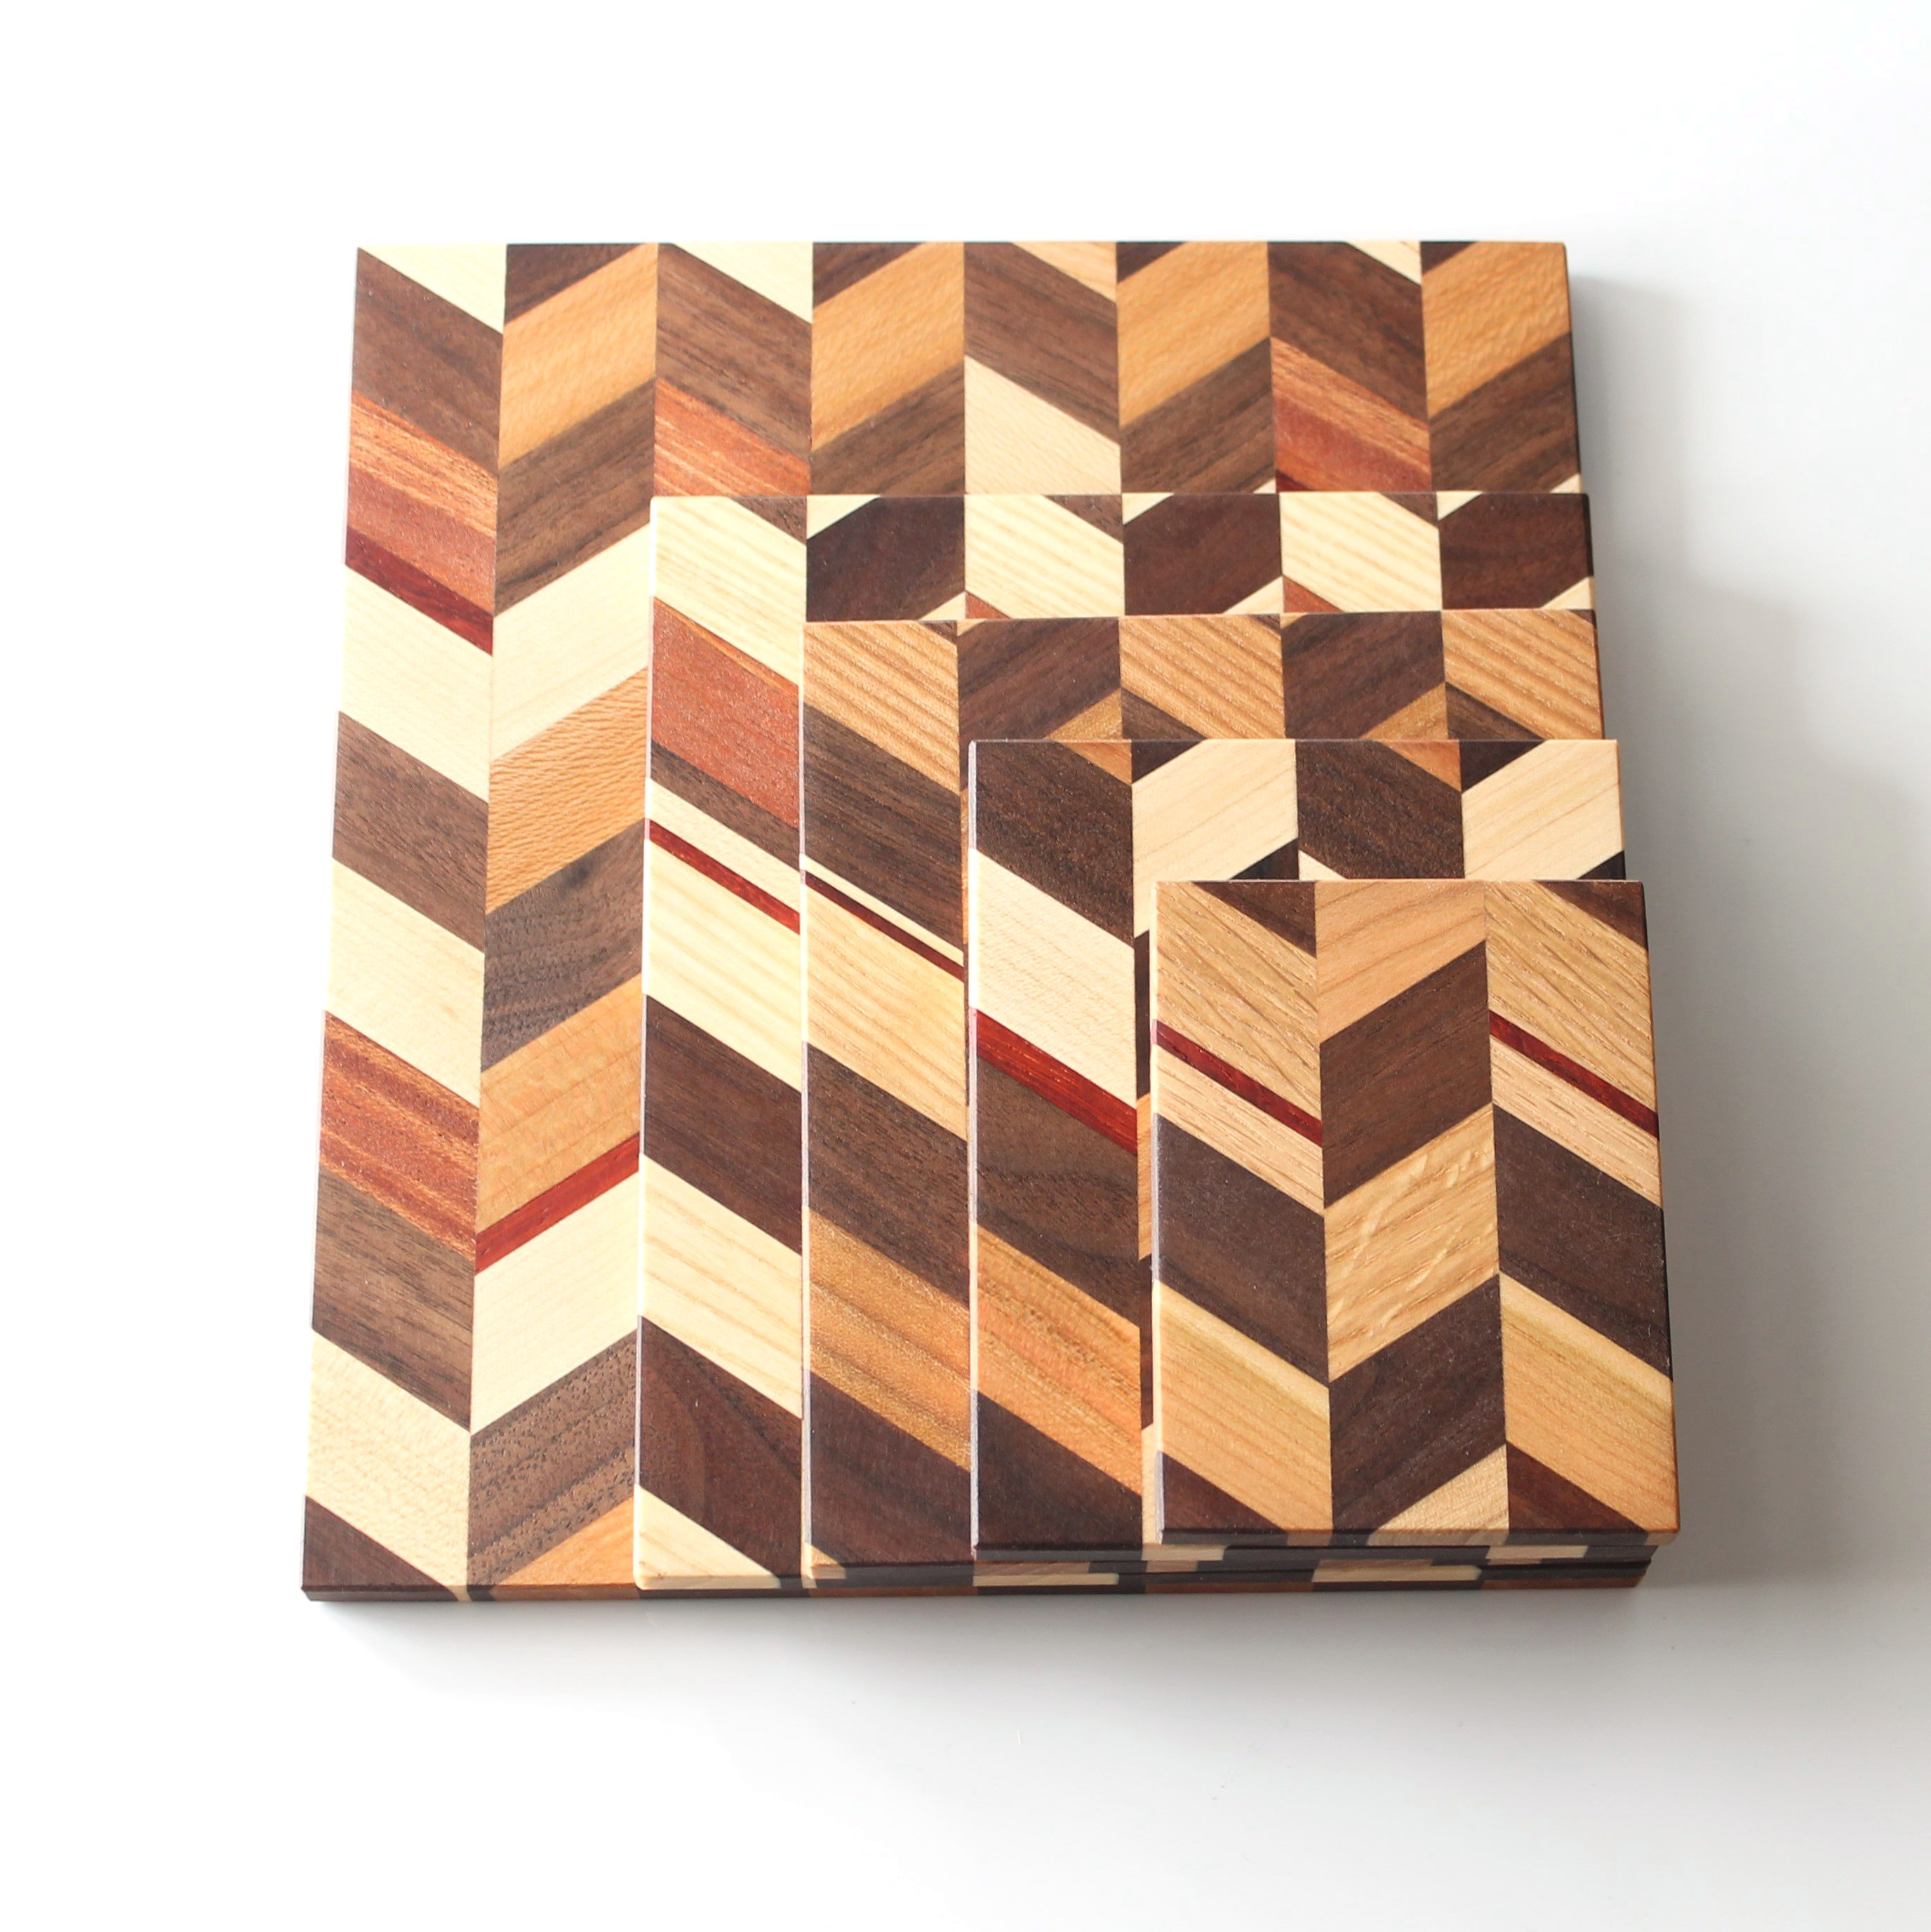 Well-liked Checkered Trivets | JK Creative Wood UF78